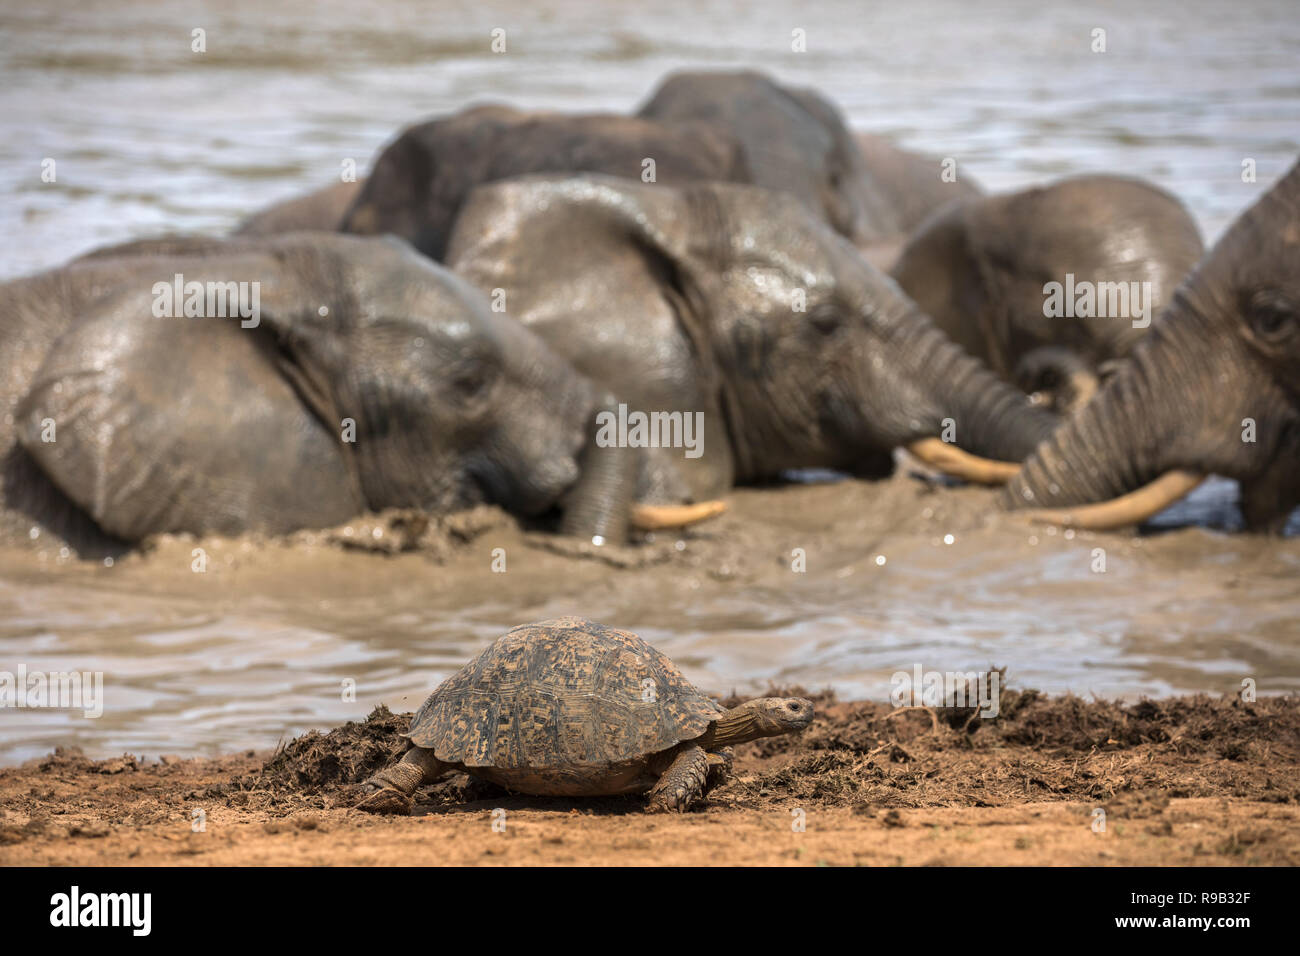 Leopard (mountain) tortoise (Stigmochelys pardalis), Addo elephant national park, Eastern Cape, South Africa - Stock Image